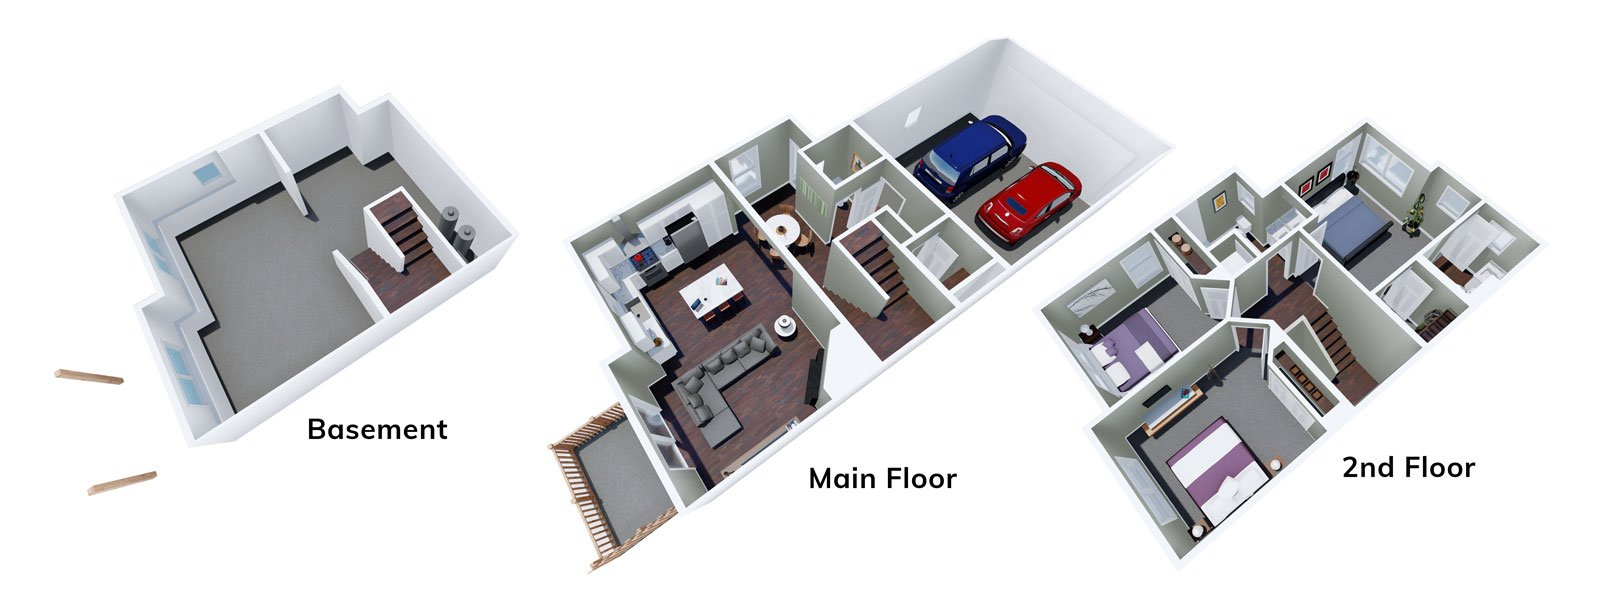 3 Bedroom homes at The Hanover Townhomes of Caledonia